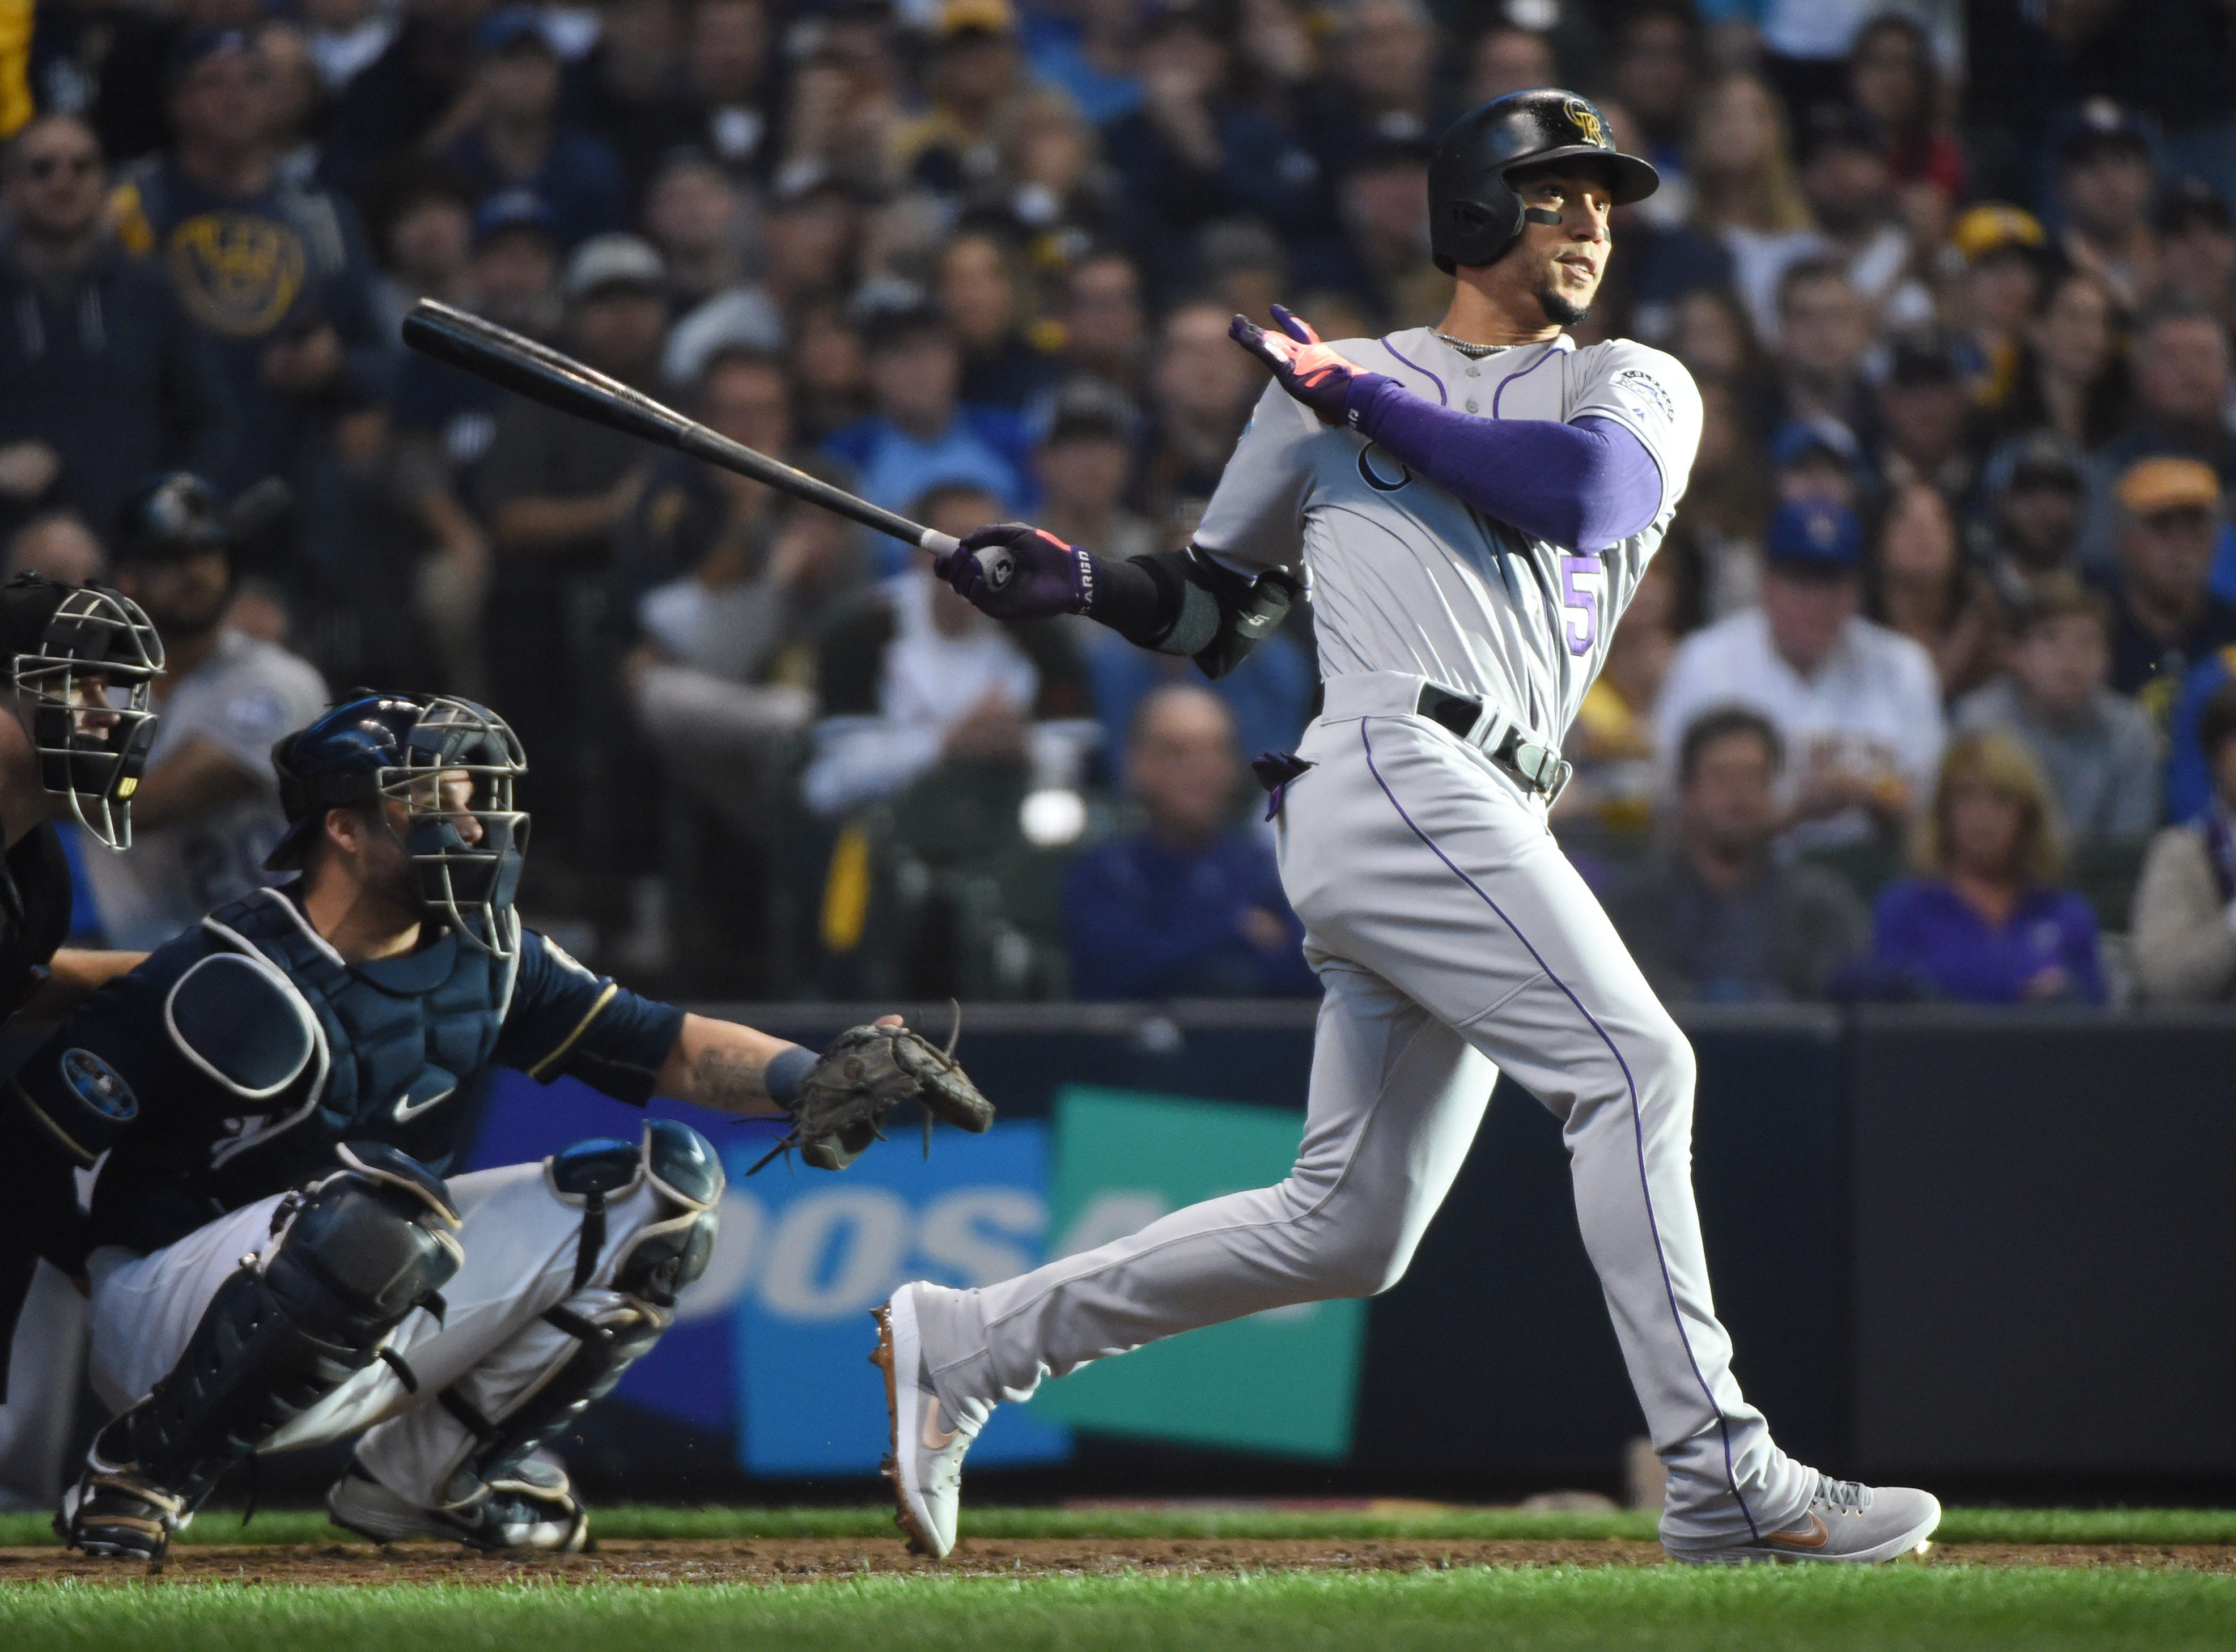 NLDS Game 1: Rockies outfielder Carlos Gonzalez triples in the fifth inning.